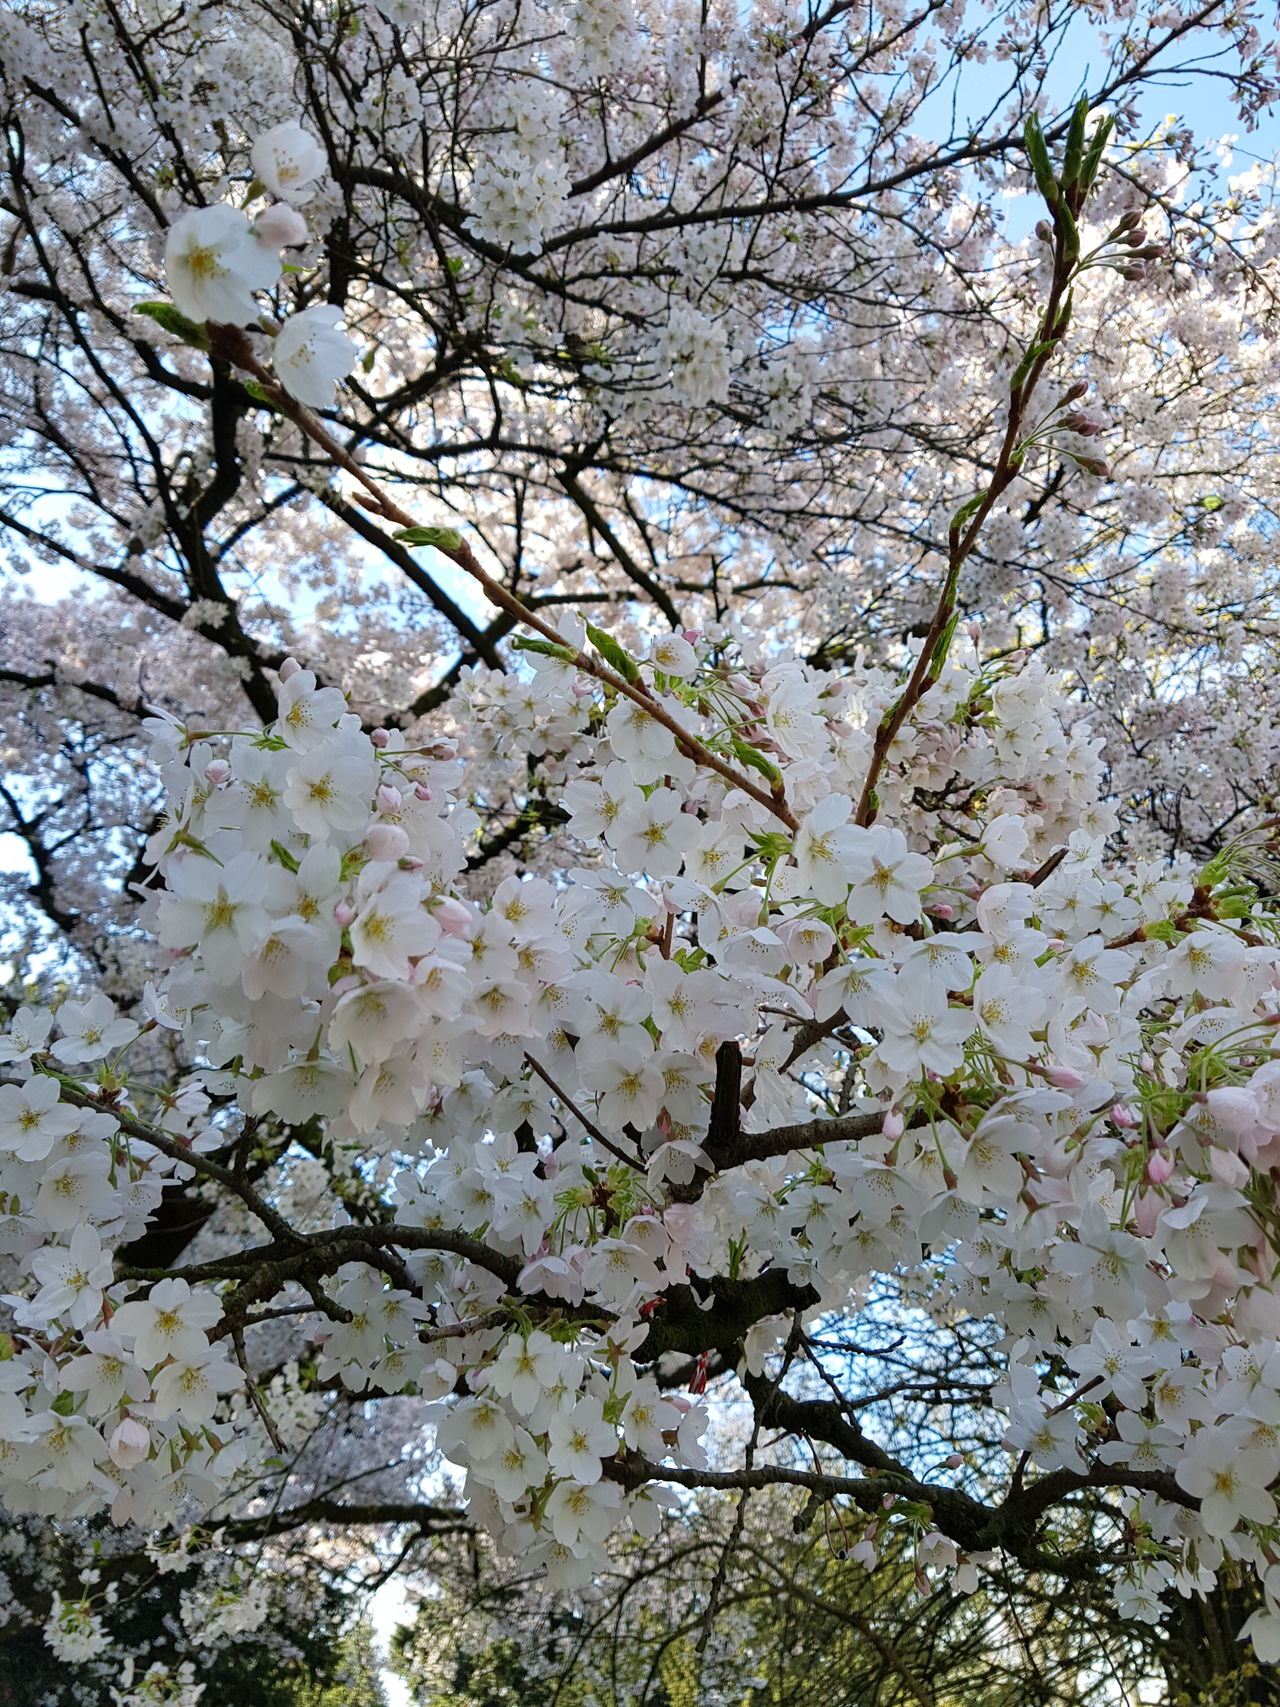 Flowers Branch Tree Nature Blossom Fragility Springtime Full Frame No People Close-up Growth Flower Freshness Sky Spring New Beginnings White Bees Lovely Atmosphere FreeTime Variation s Same Same But Different Plants Beauty In Nature Backgrounds Flower Head